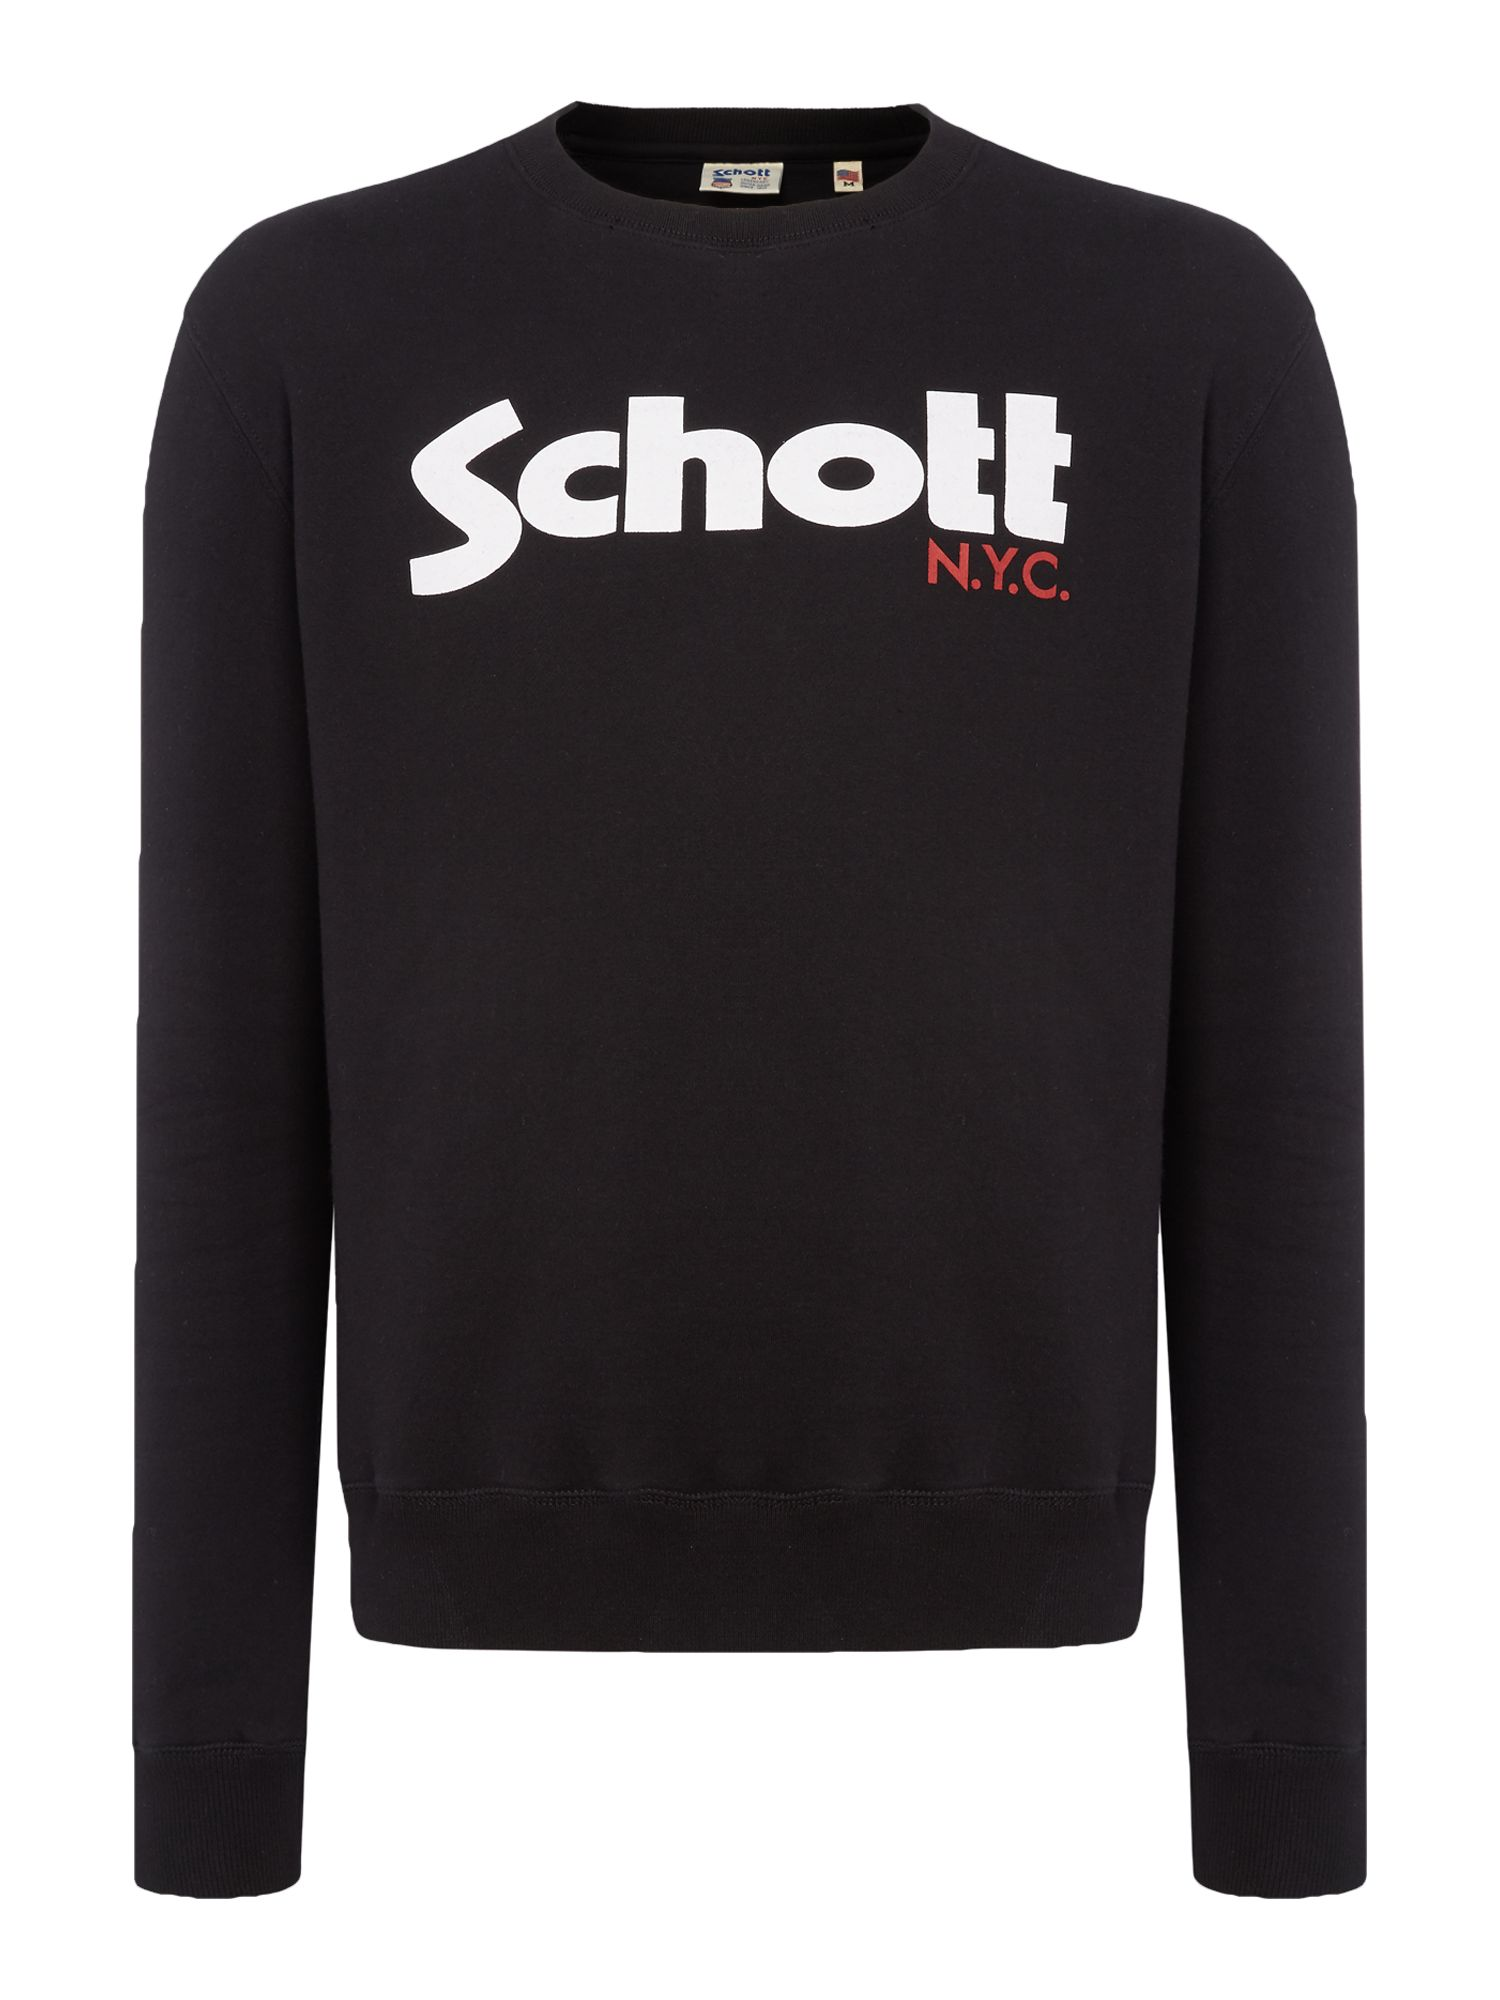 Men's Schott Large logo crew neck sweatshirt, Black